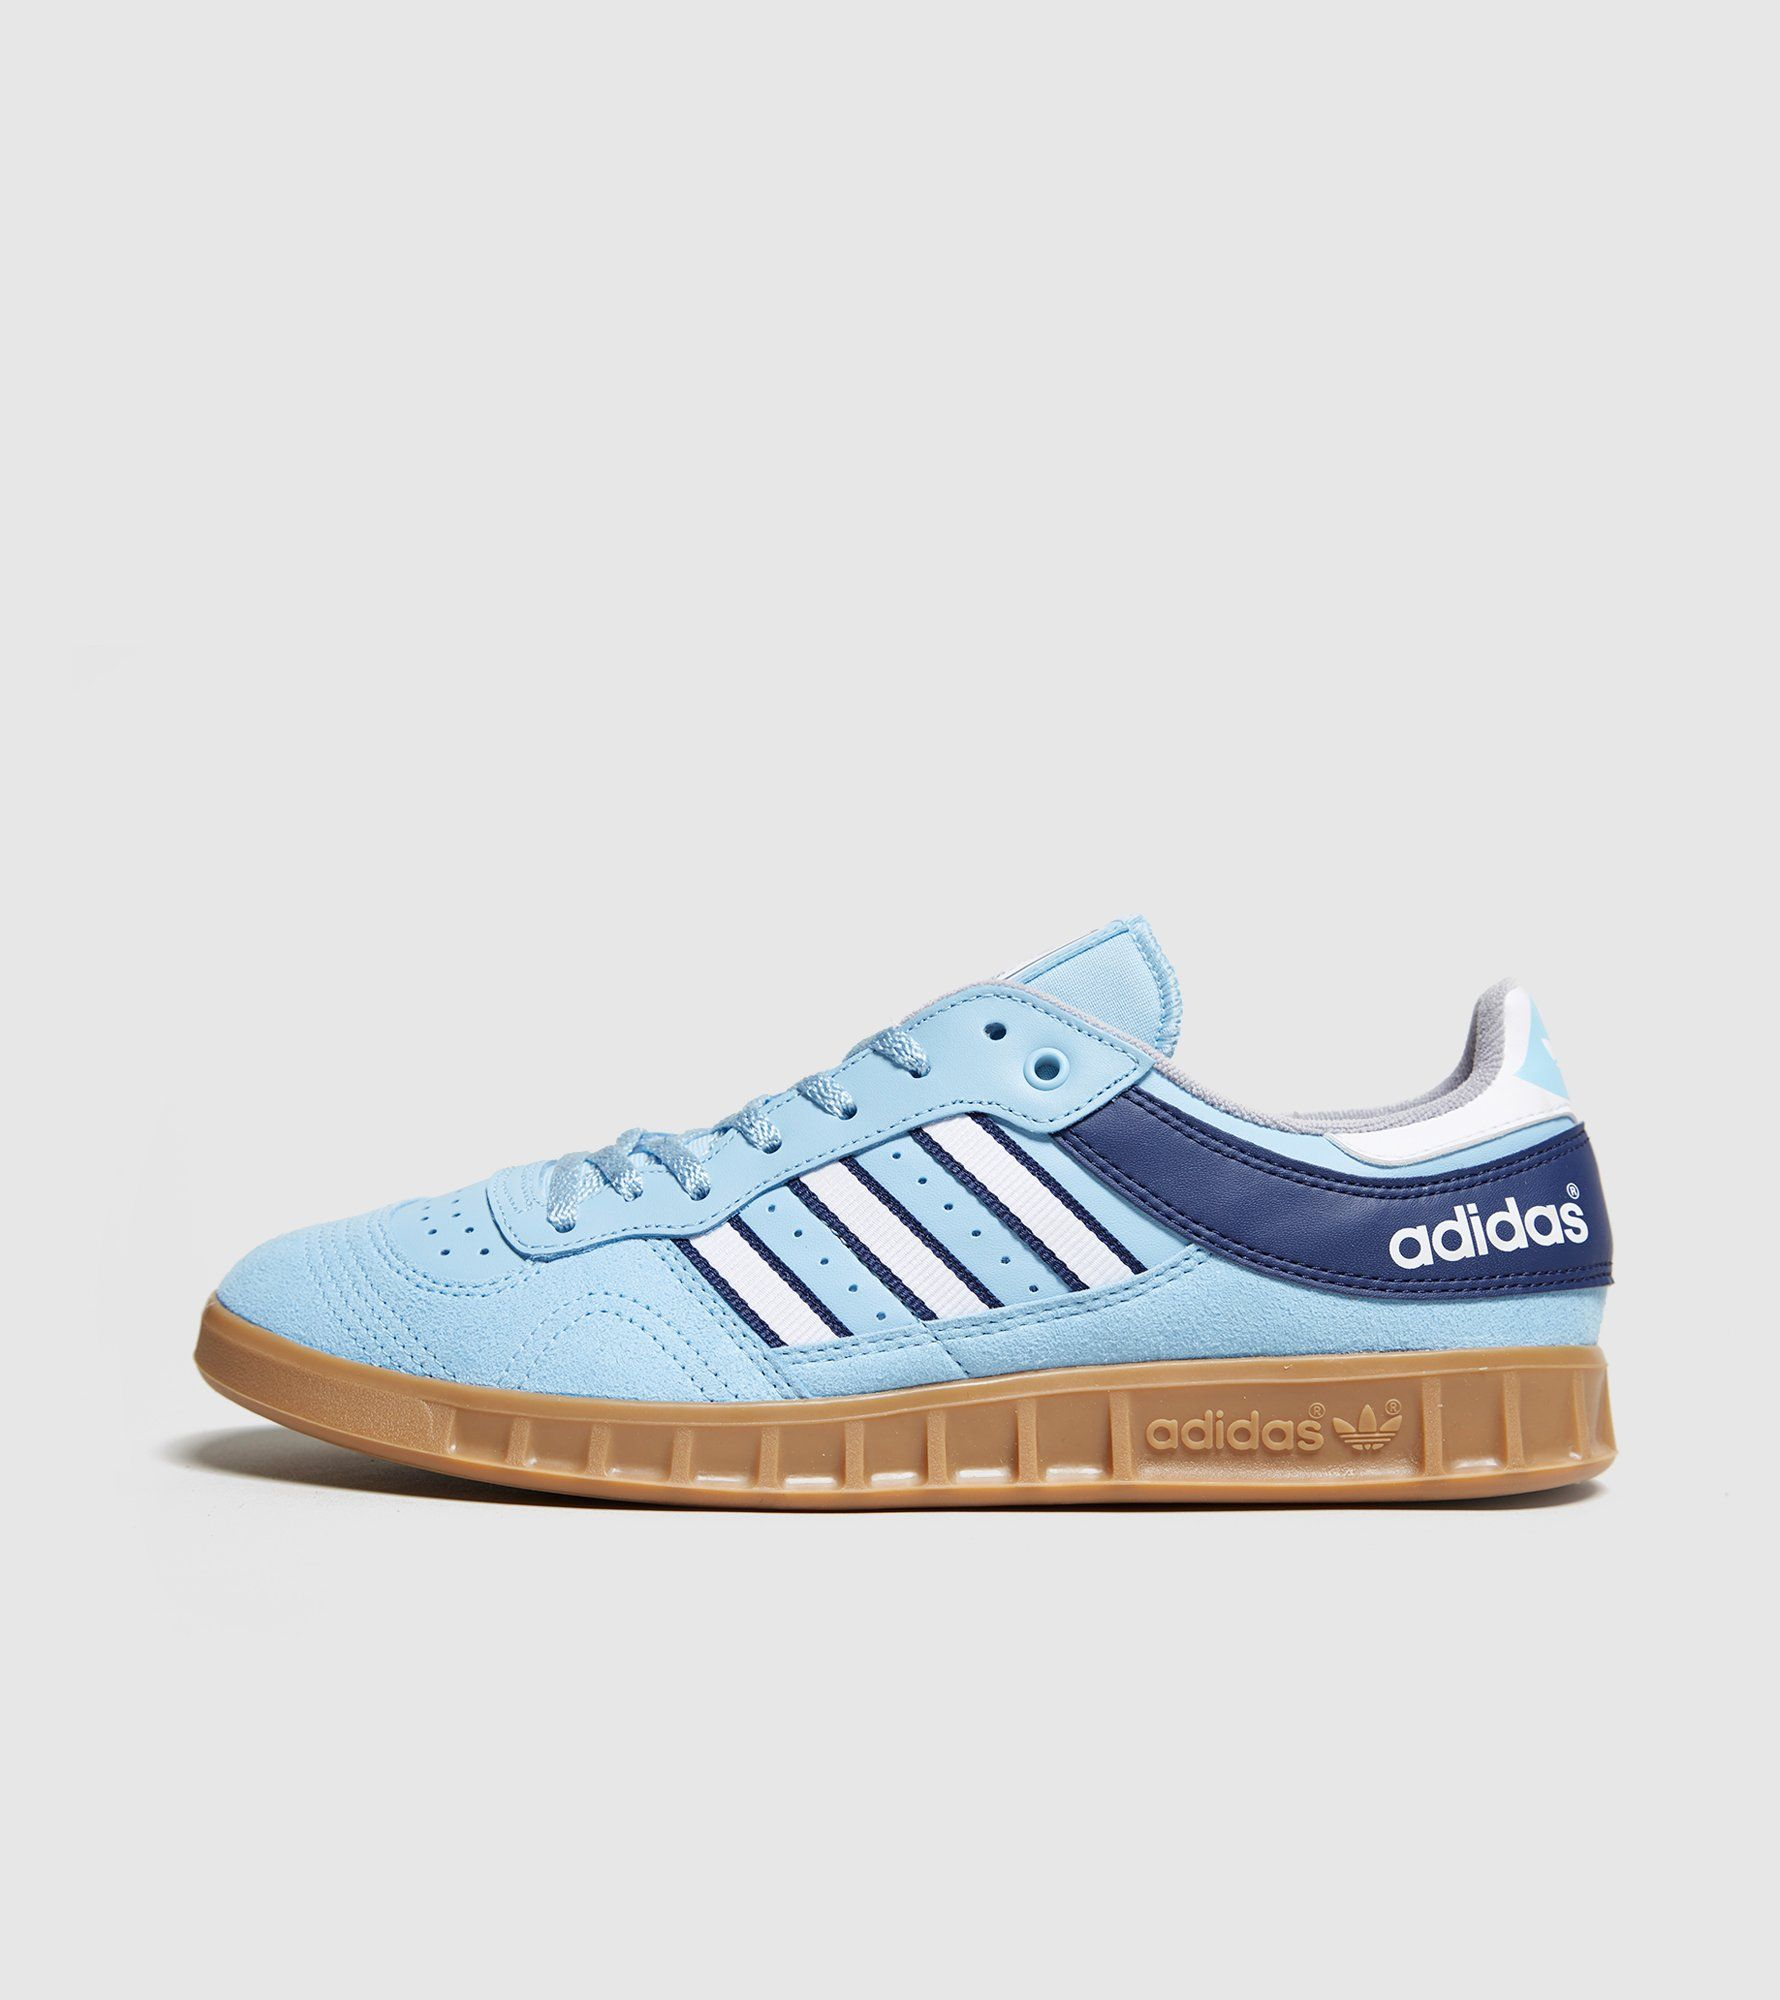 adidas Originals Handball Top - size? Exclusive